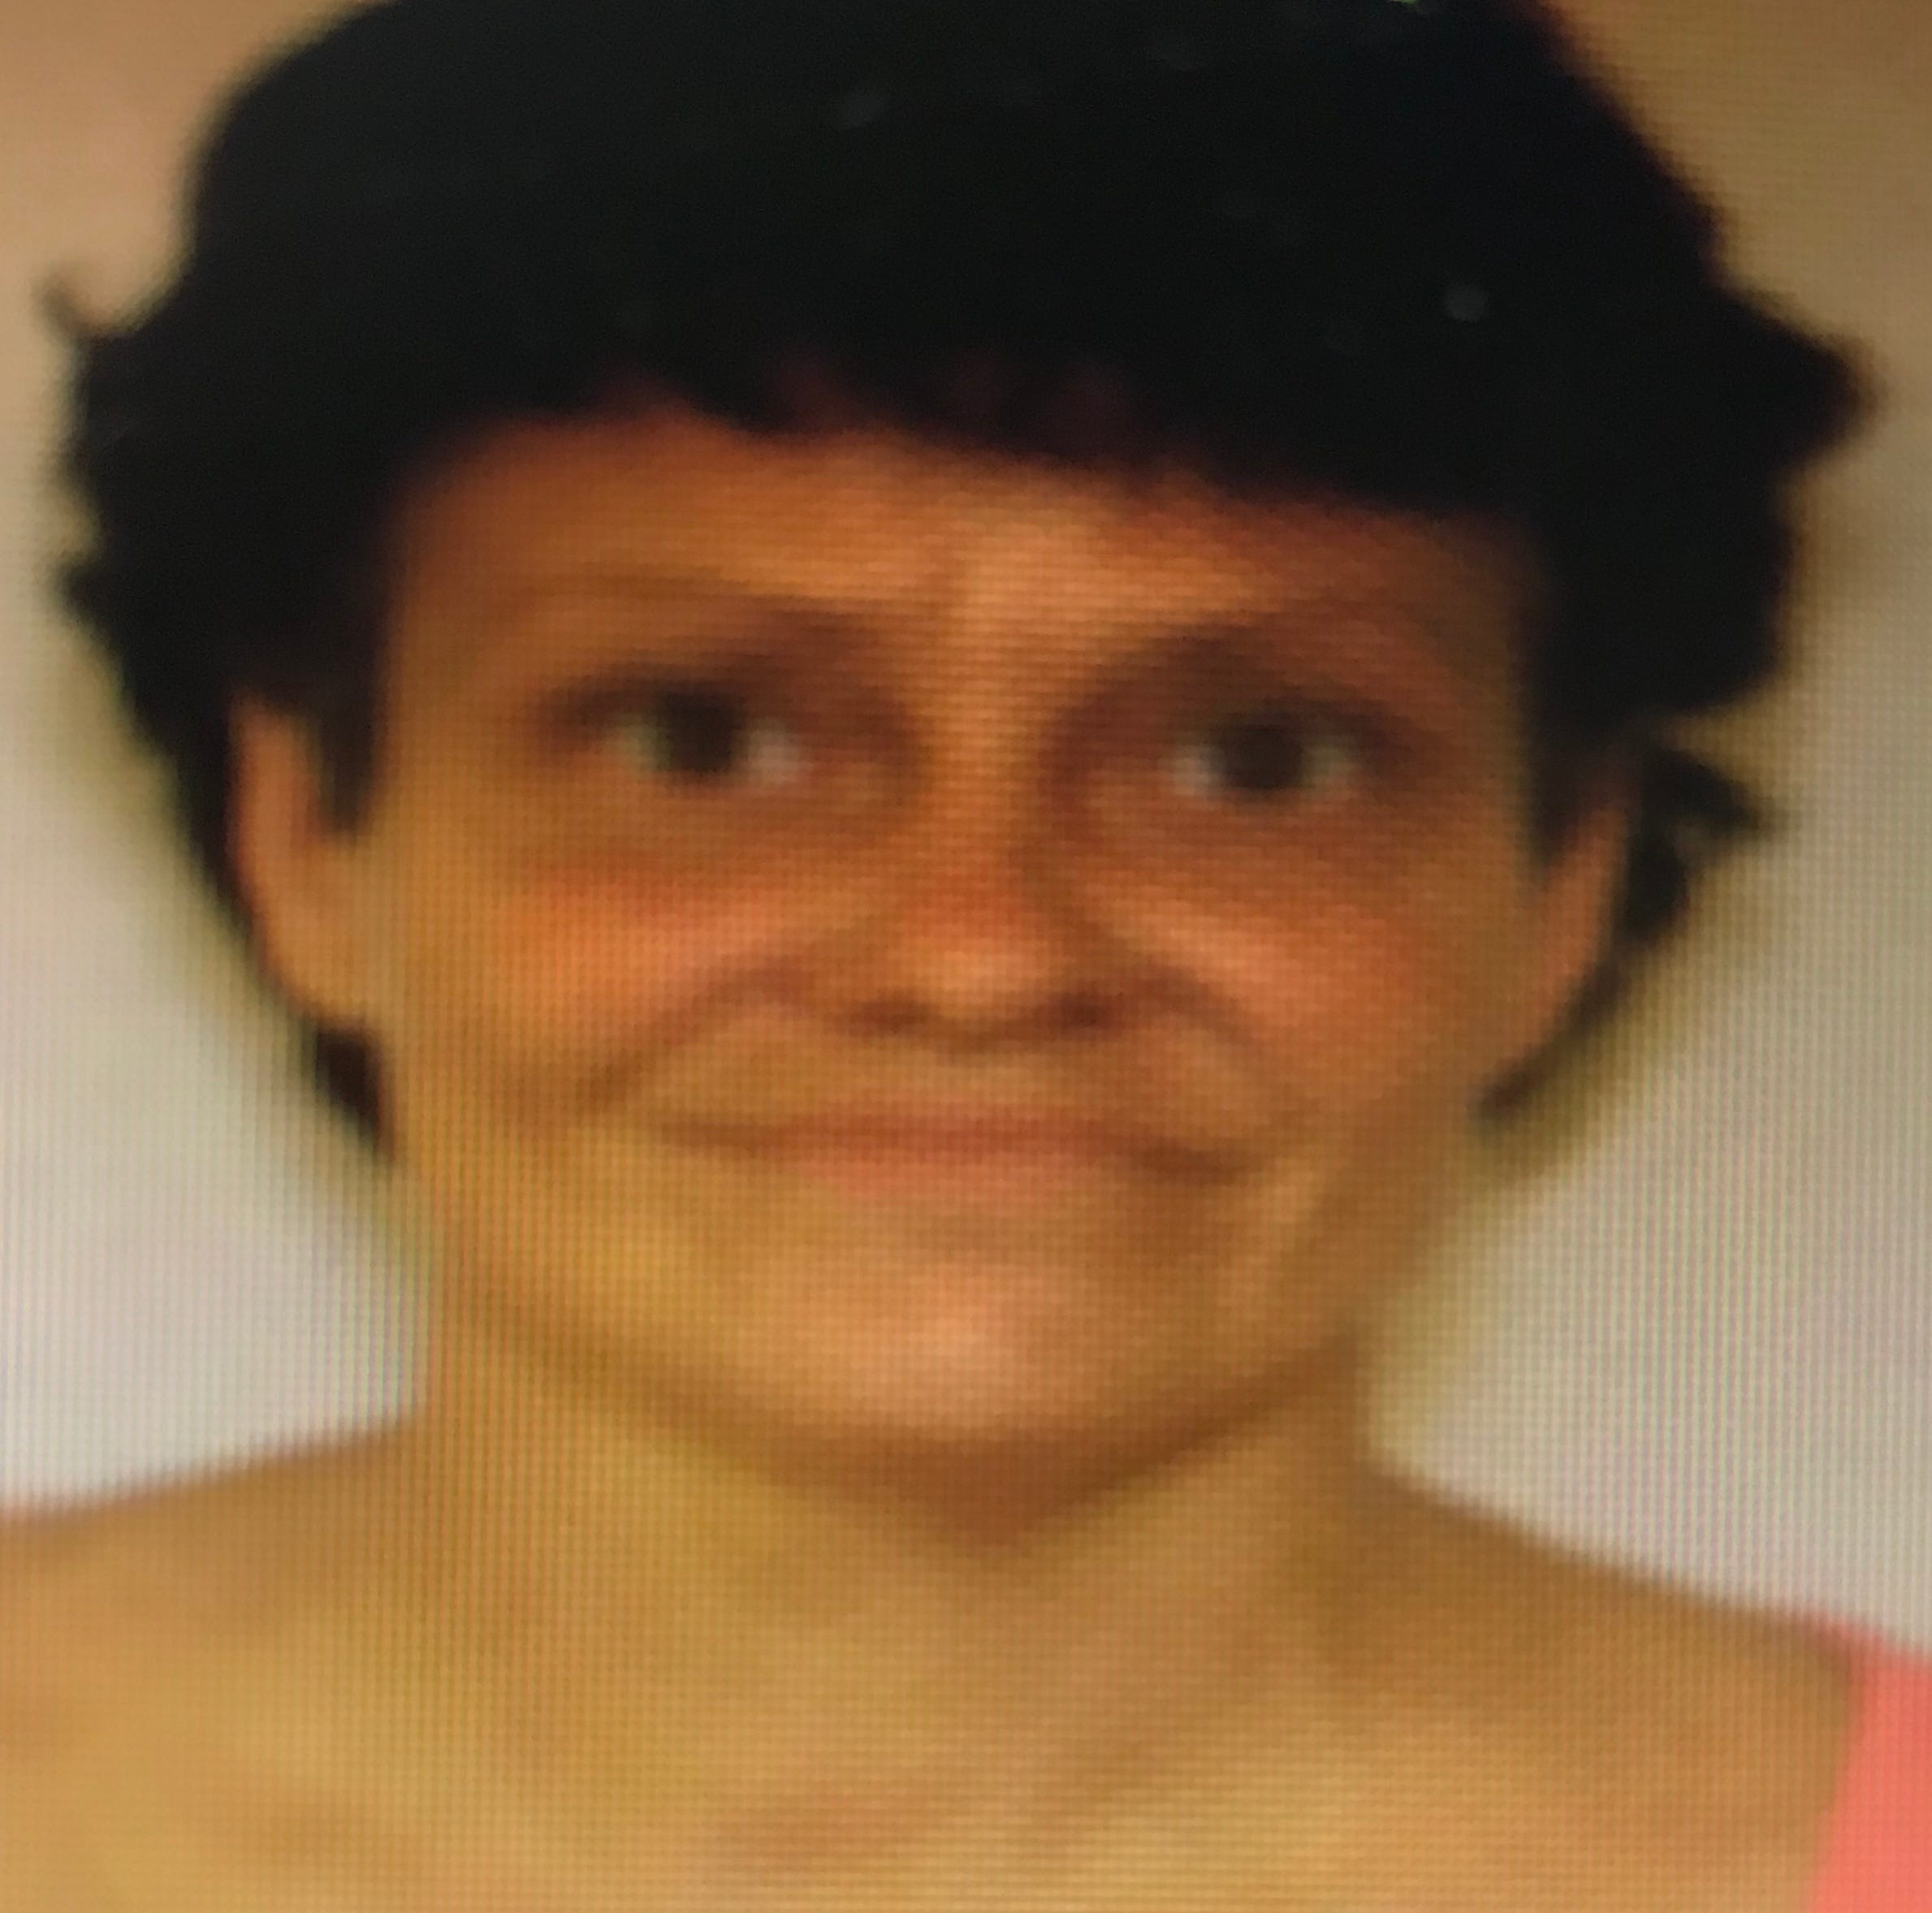 Remains found in Greenville County identified as 45-year-old woman